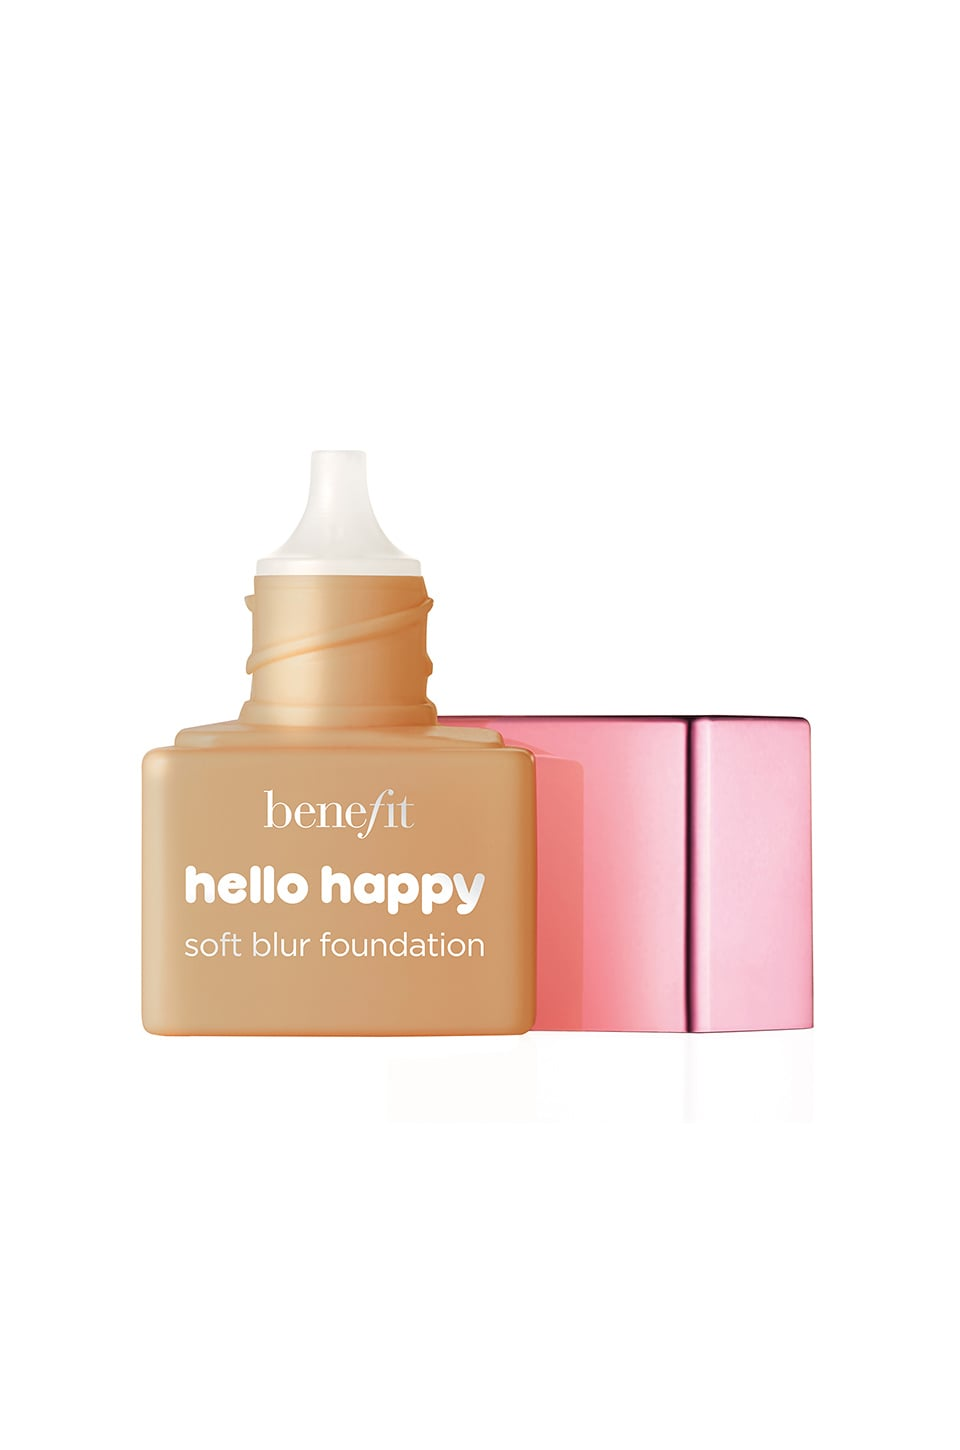 Benefit Cosmetics Hello Happy Soft Blur Foundation Mini in Shade 06